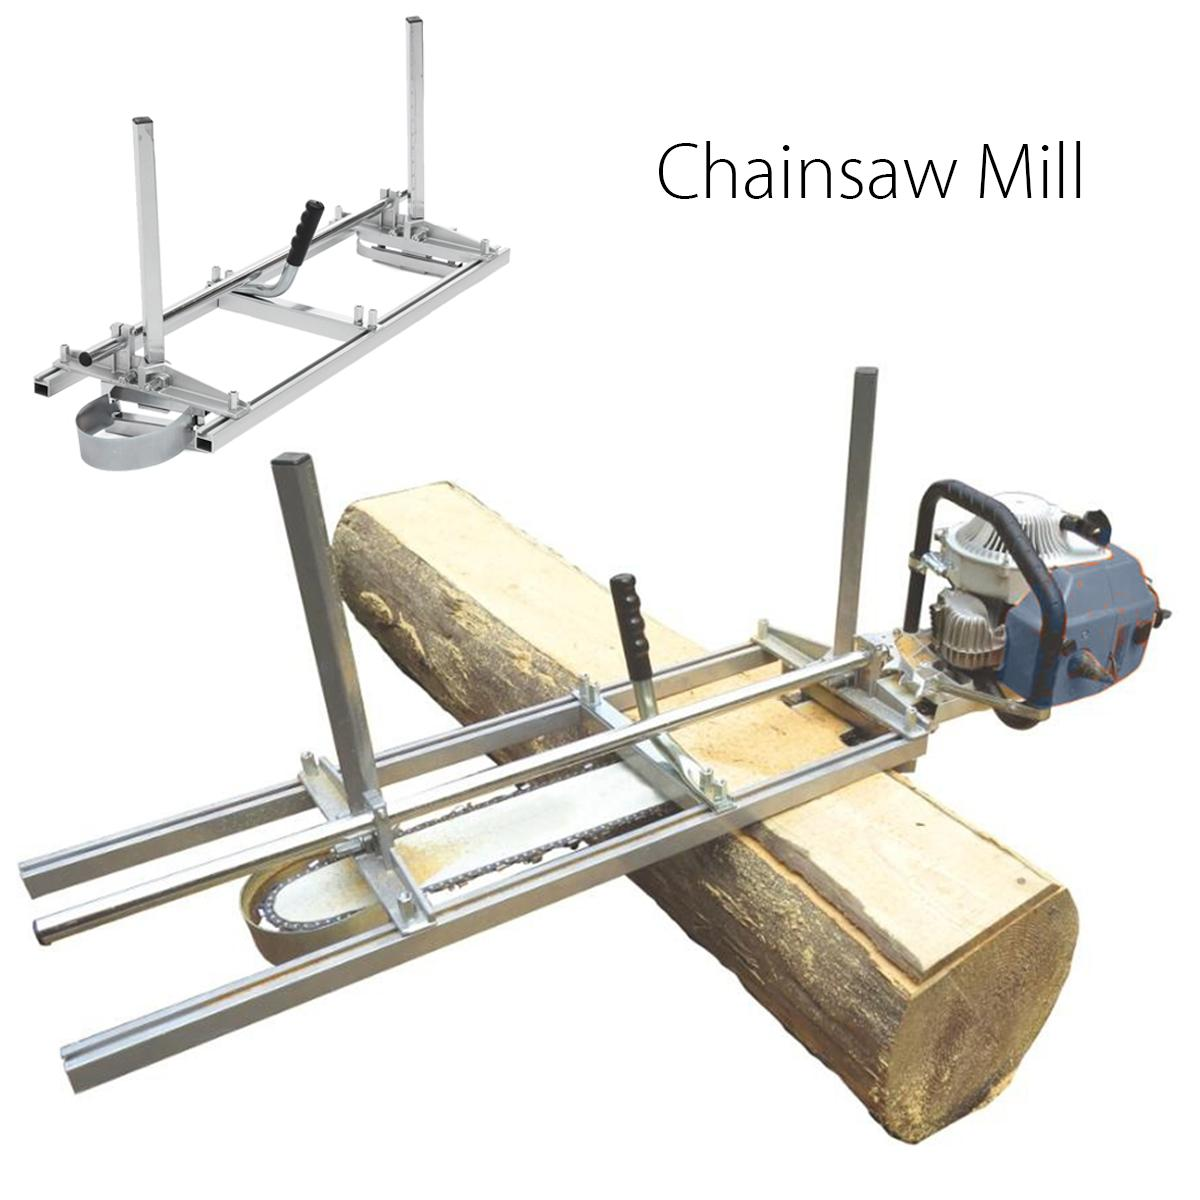 Doersupp Portable Chain Saw Chainsaw Mill 36 Inch Planking Milling Bar Size 14 to 36 Planking Lumber Cutting ToolDoersupp Portable Chain Saw Chainsaw Mill 36 Inch Planking Milling Bar Size 14 to 36 Planking Lumber Cutting Tool